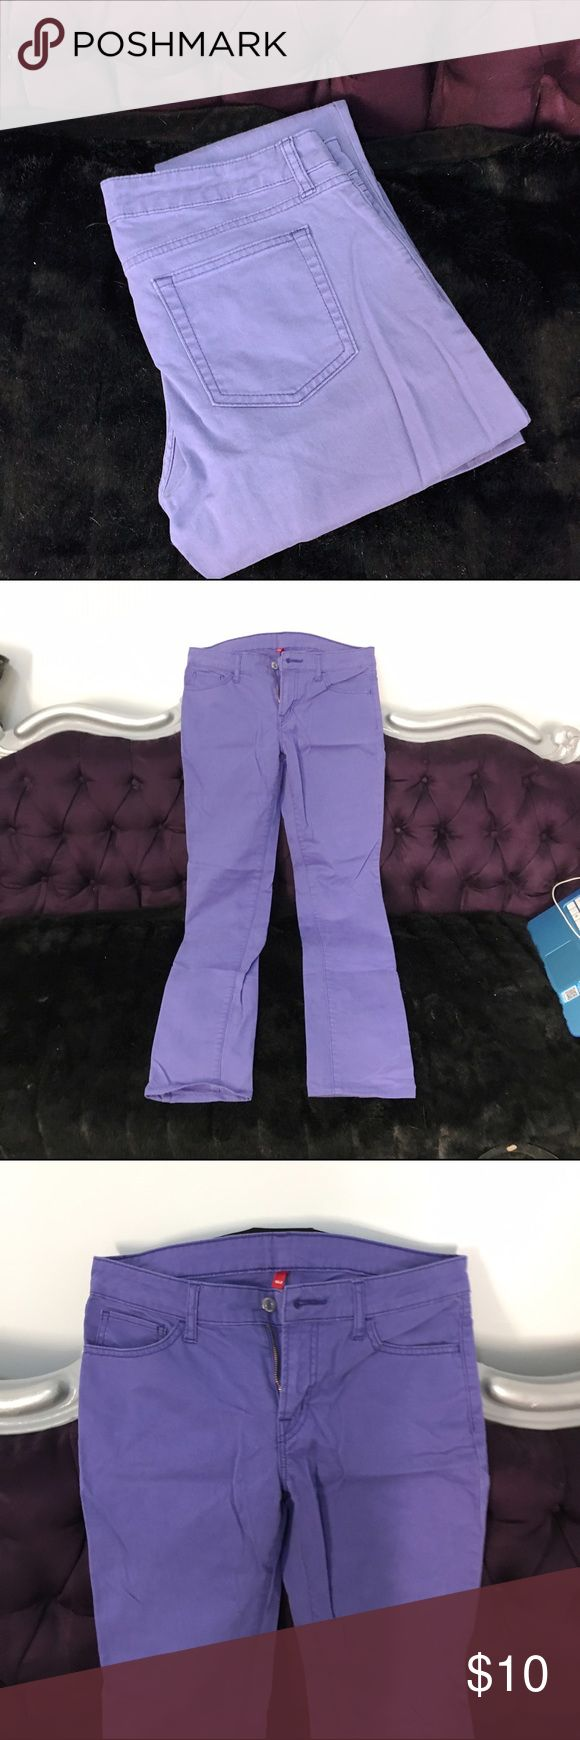 Uniqlo purple ultra stretch jeans Worn a few times only, awesome condition!  27x33. Uniqlo Pants Skinny